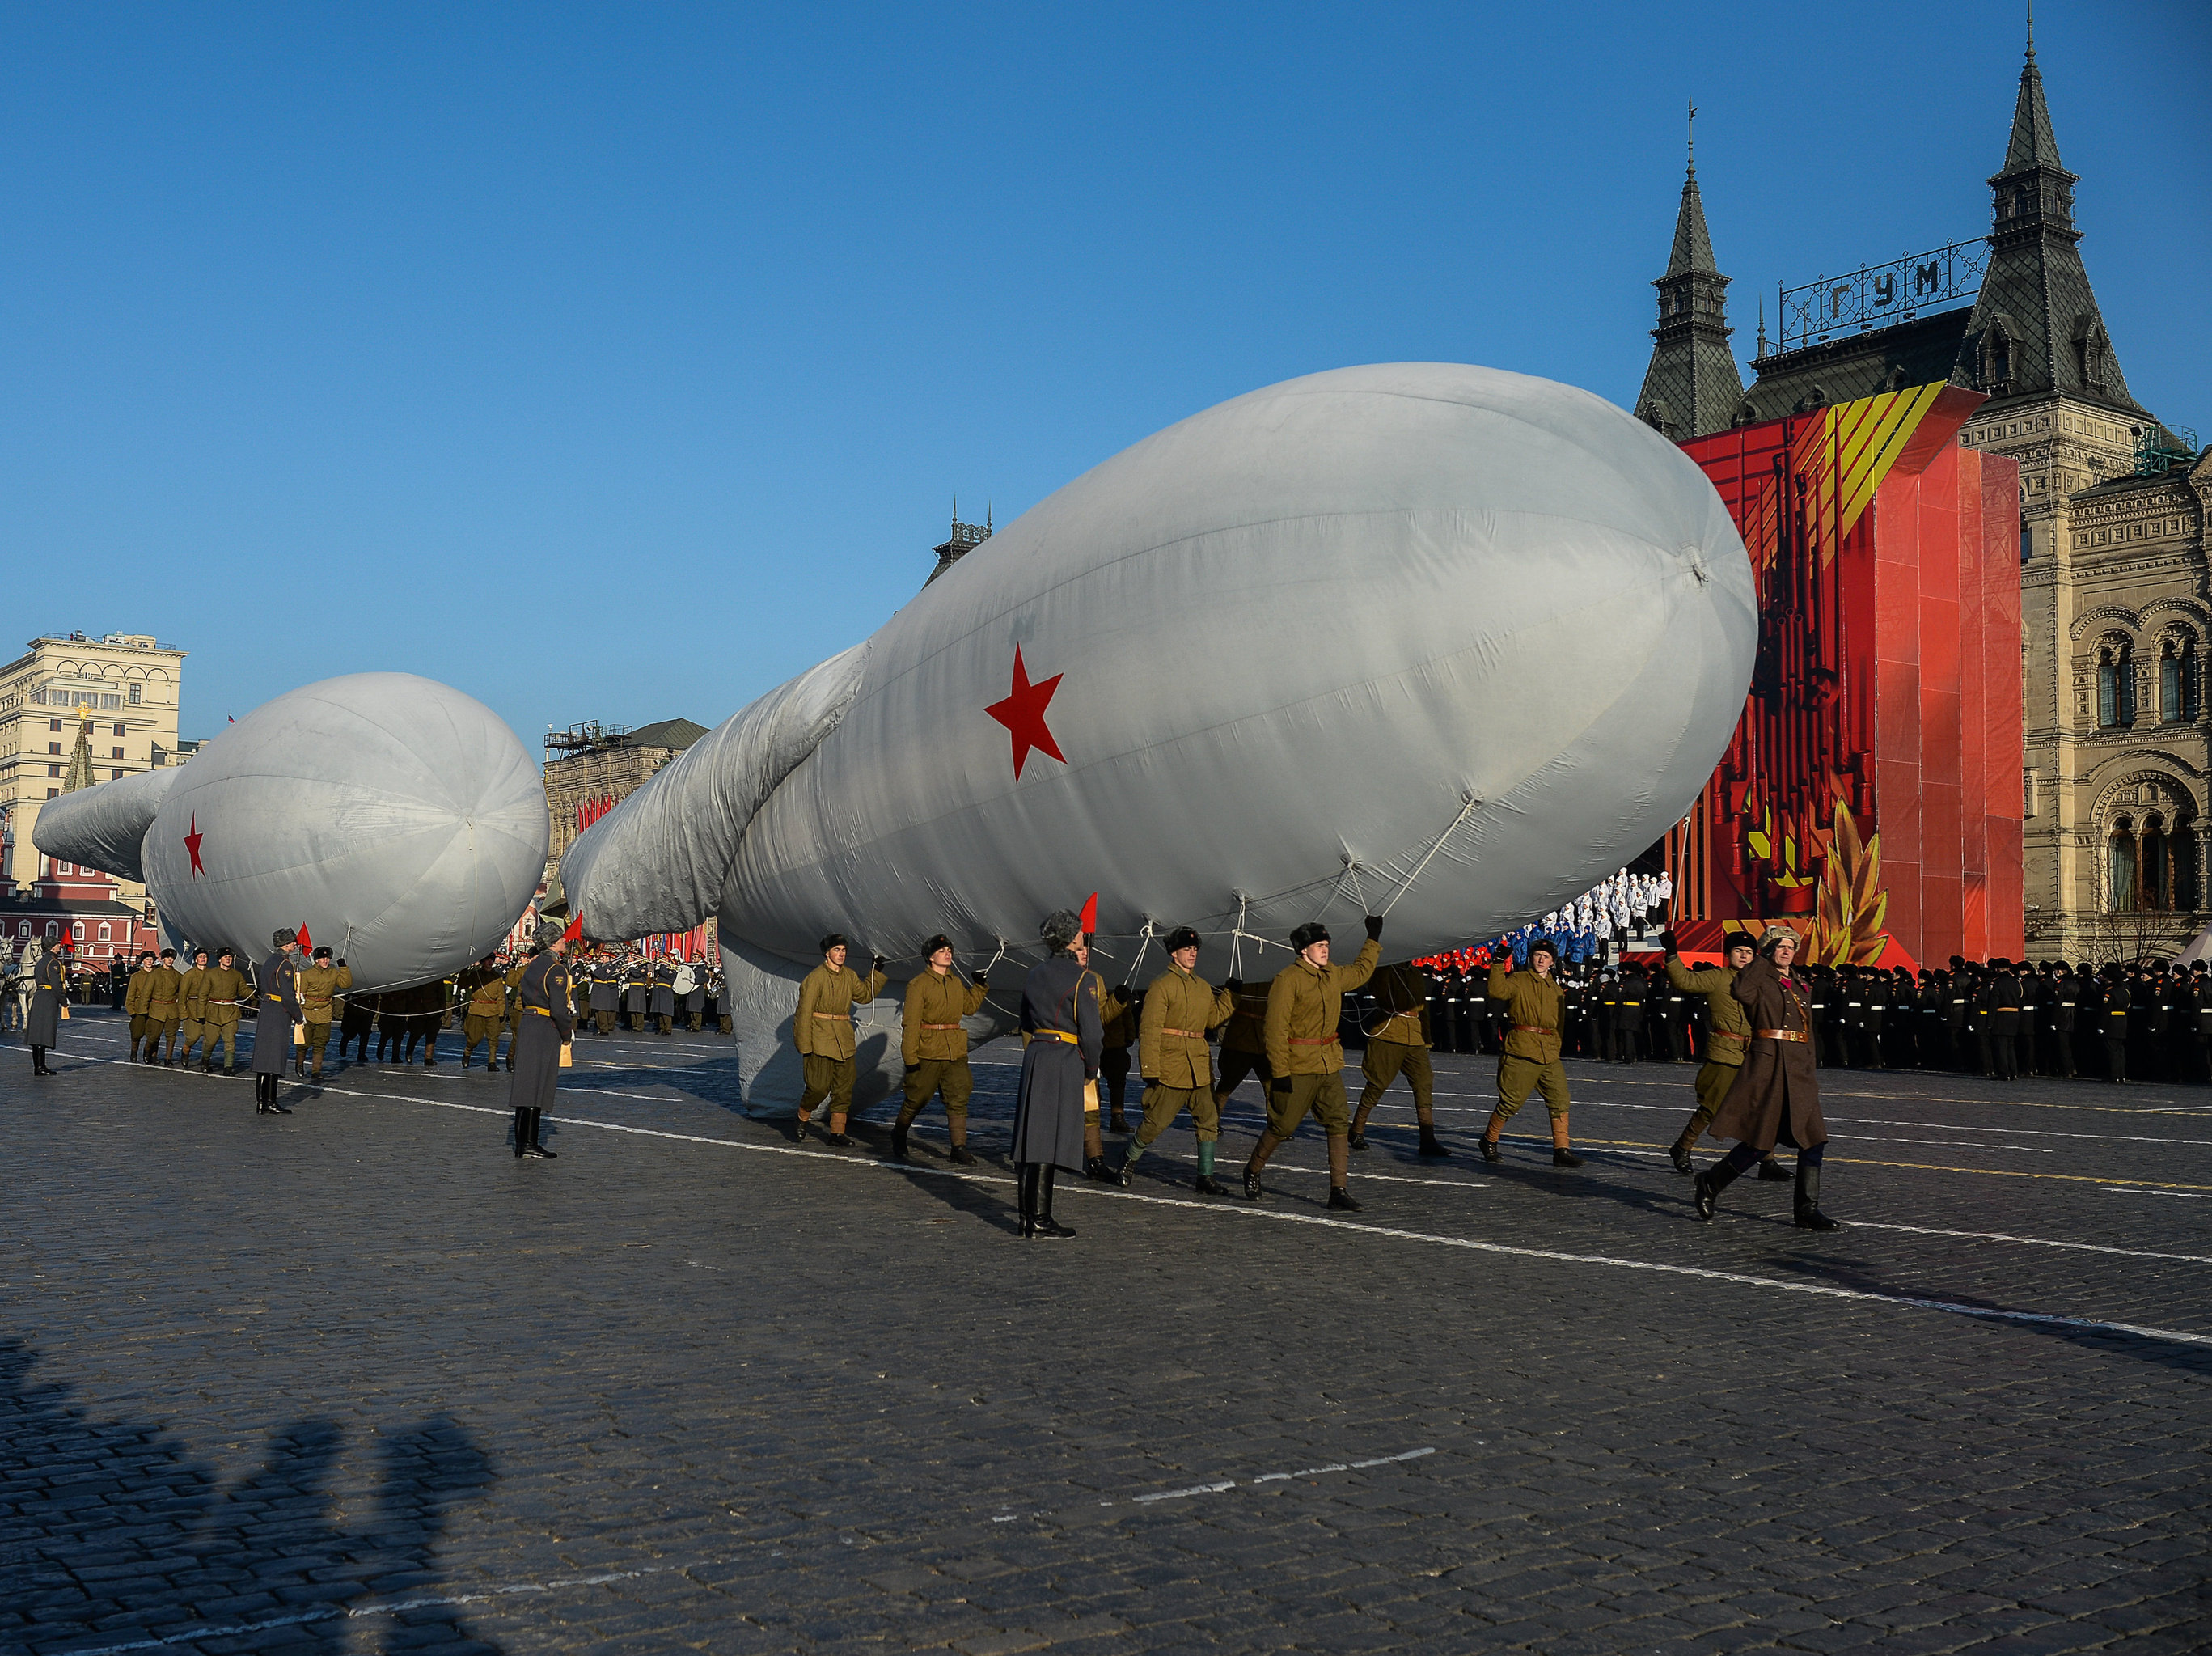 Servicemen marching with mock blimps to mark the legendary November 7, 1941 Military Parade on Red Square, Moscow.